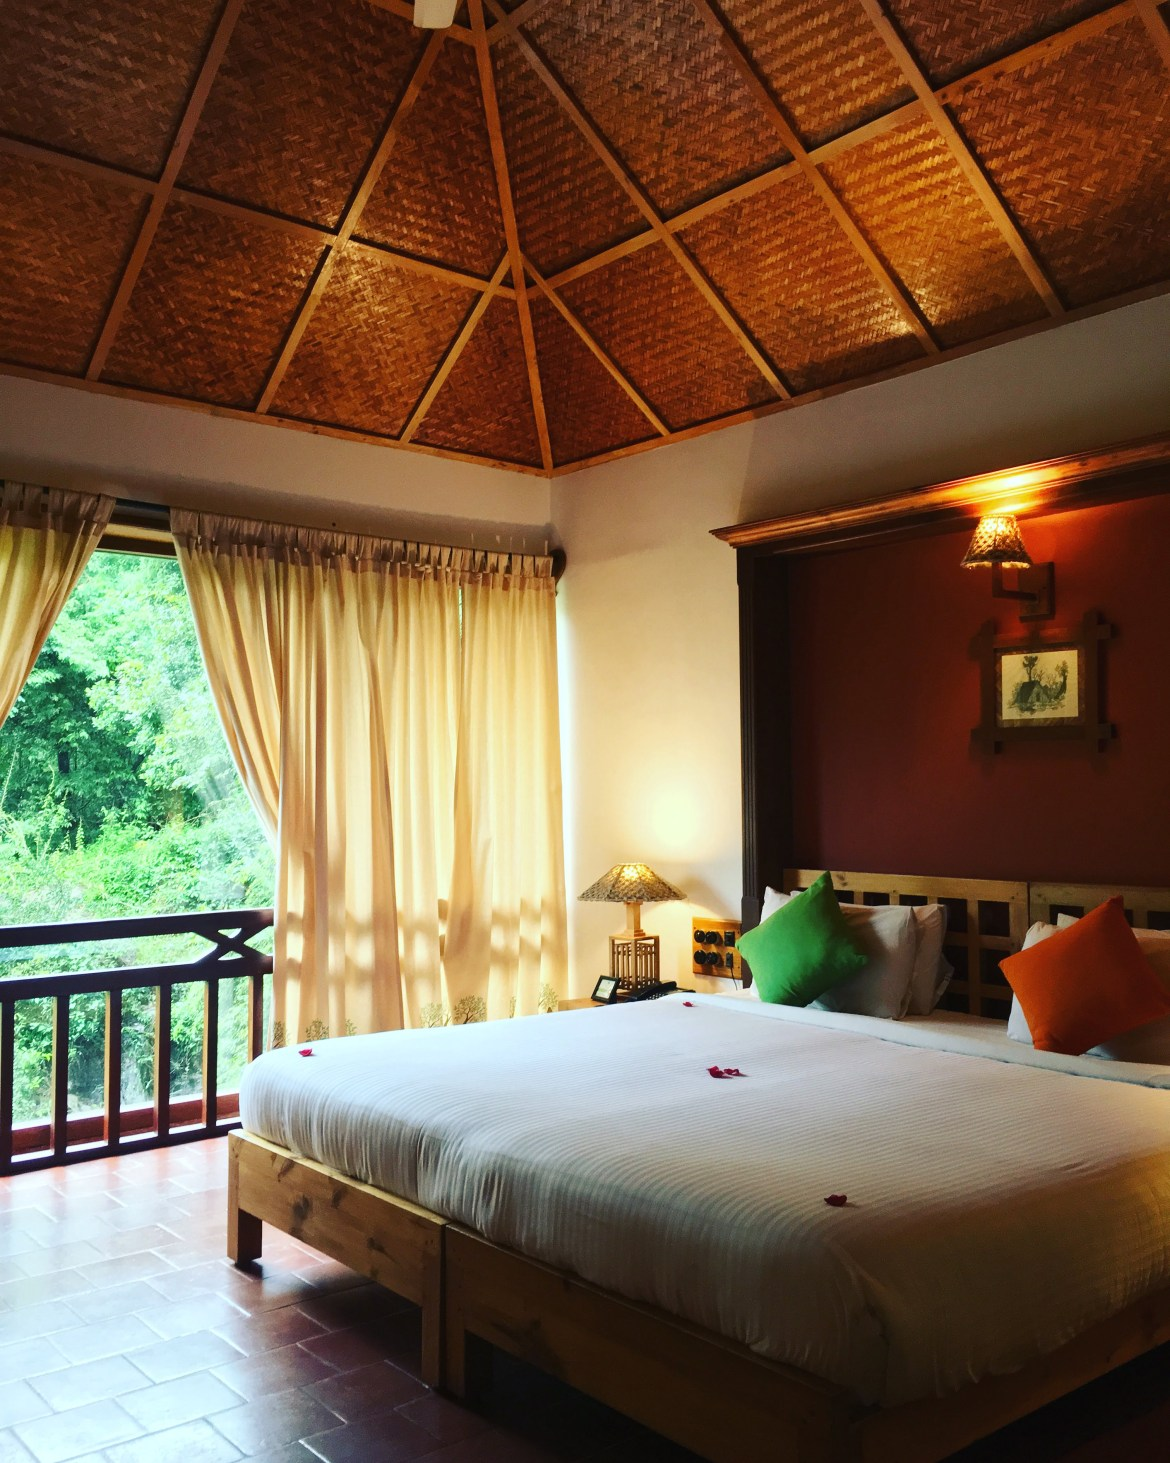 Room Interiors at Kurumba Village Resort